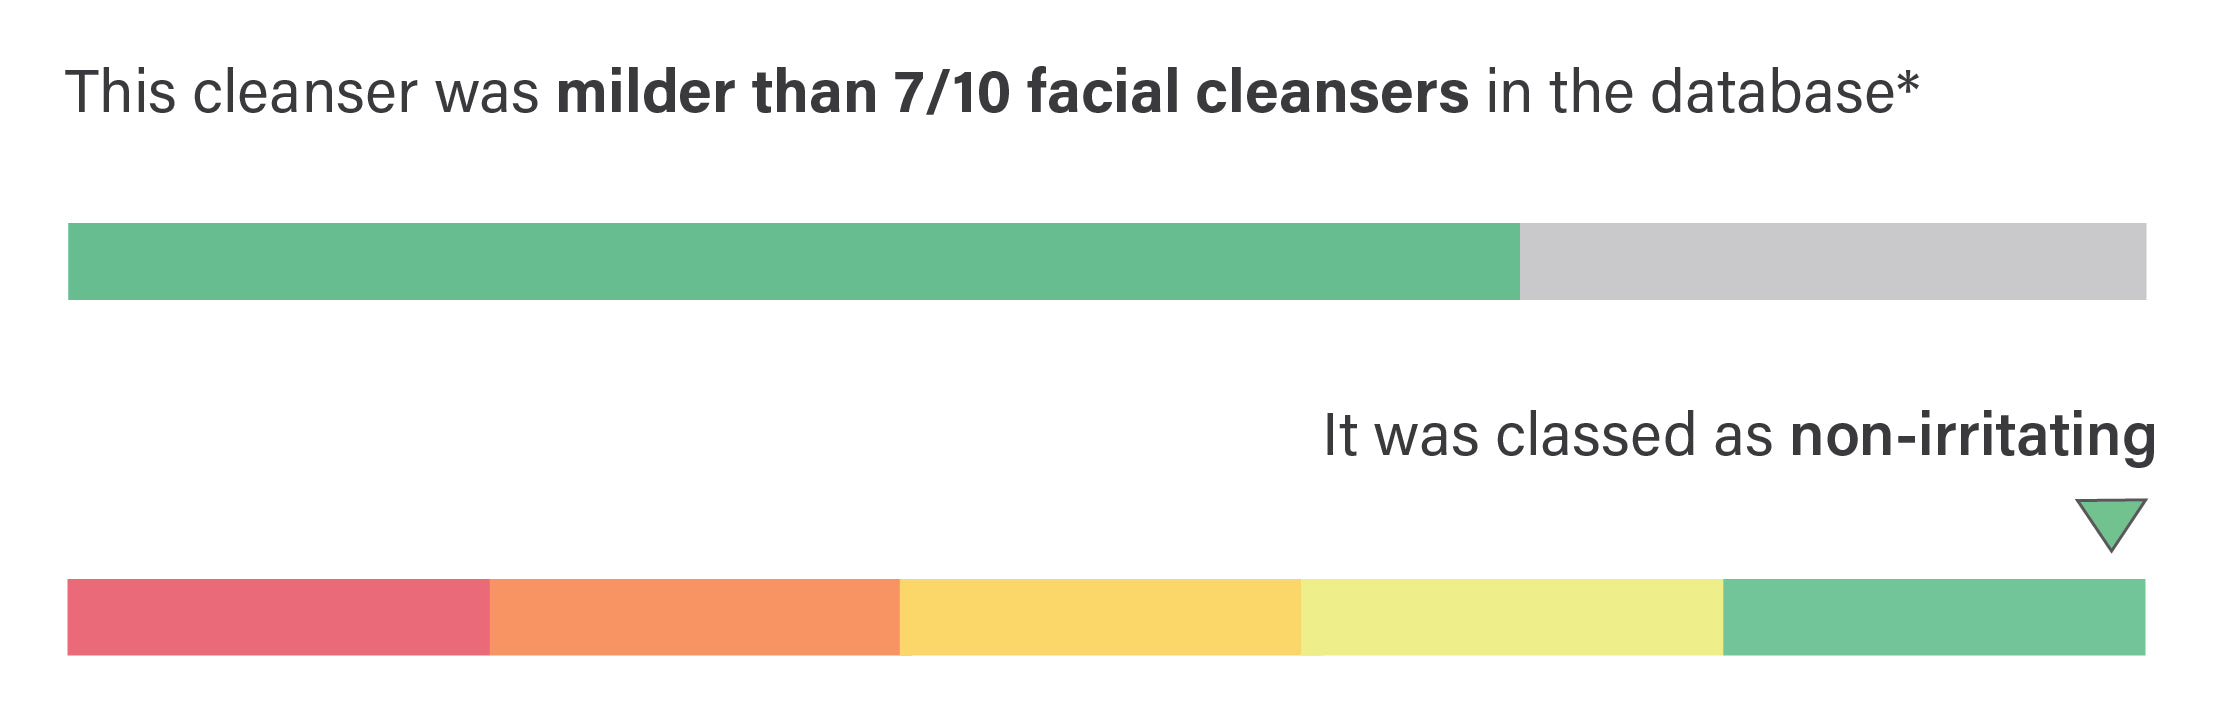 This cleanser was milder than 7 out of 10 cleansers in thedatabase, and was classified as non irritating.